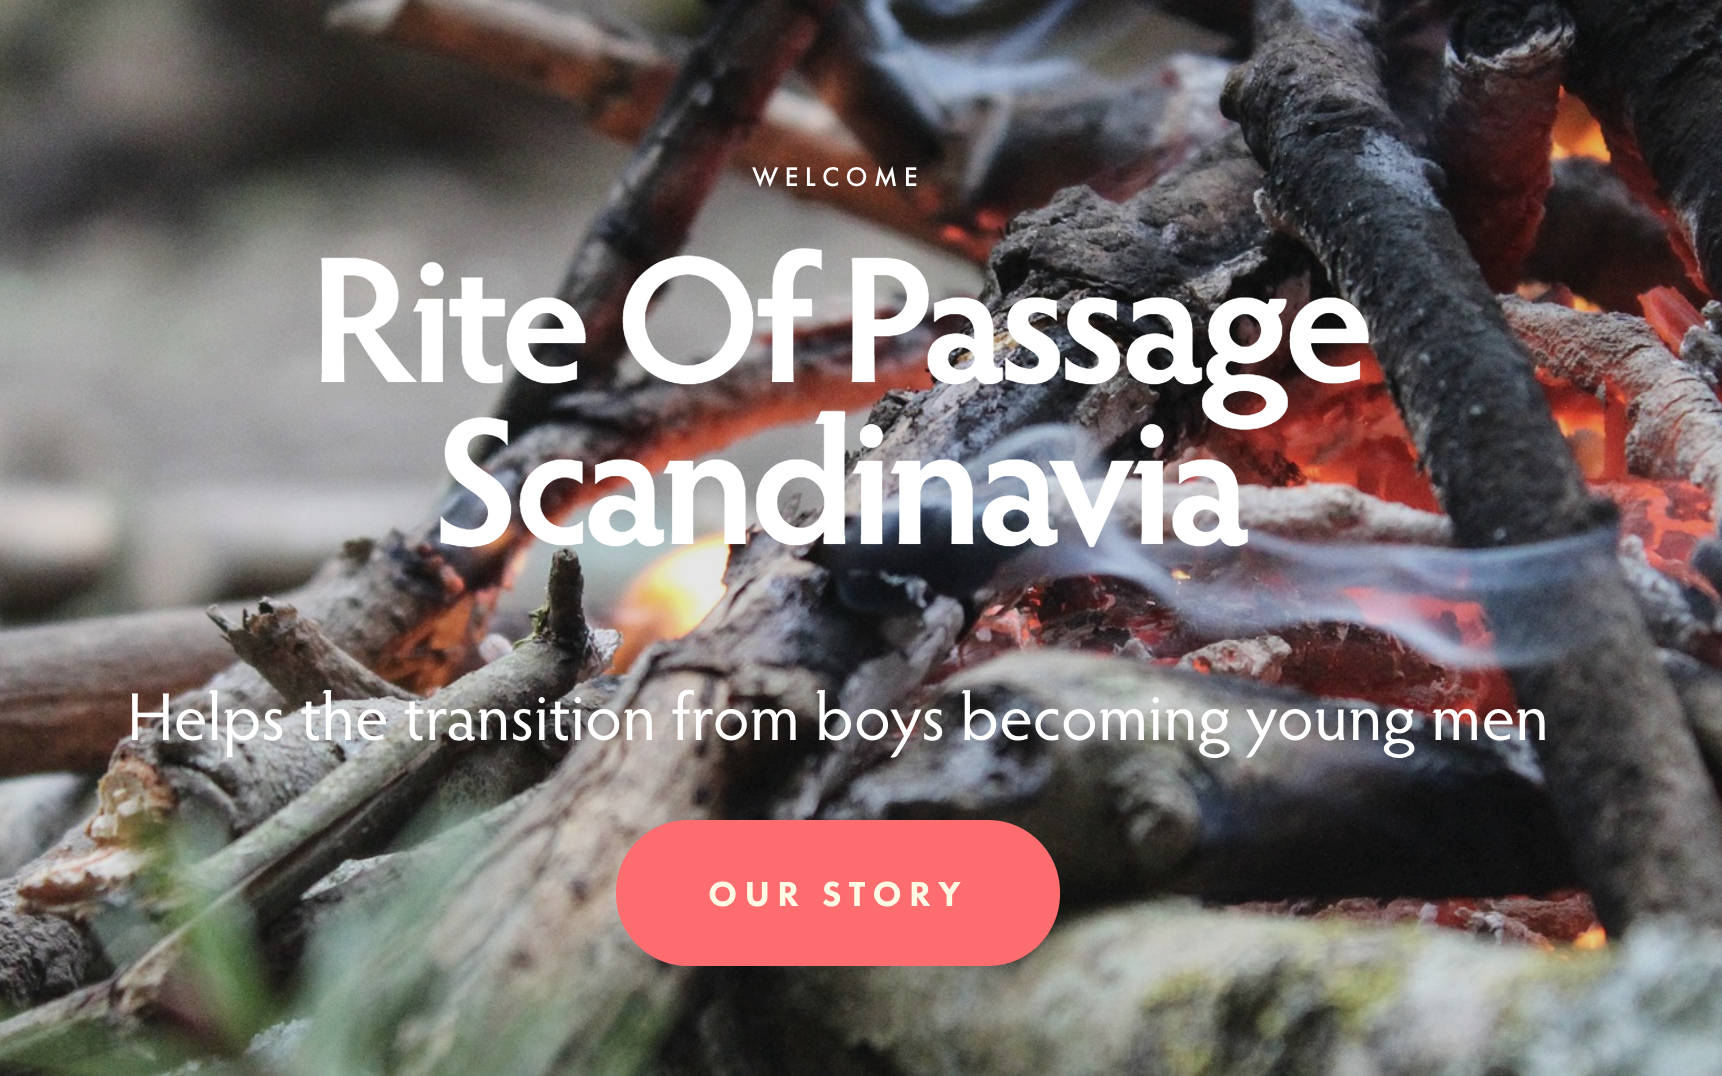 Webbsida Rites Of Passage Scandinavia